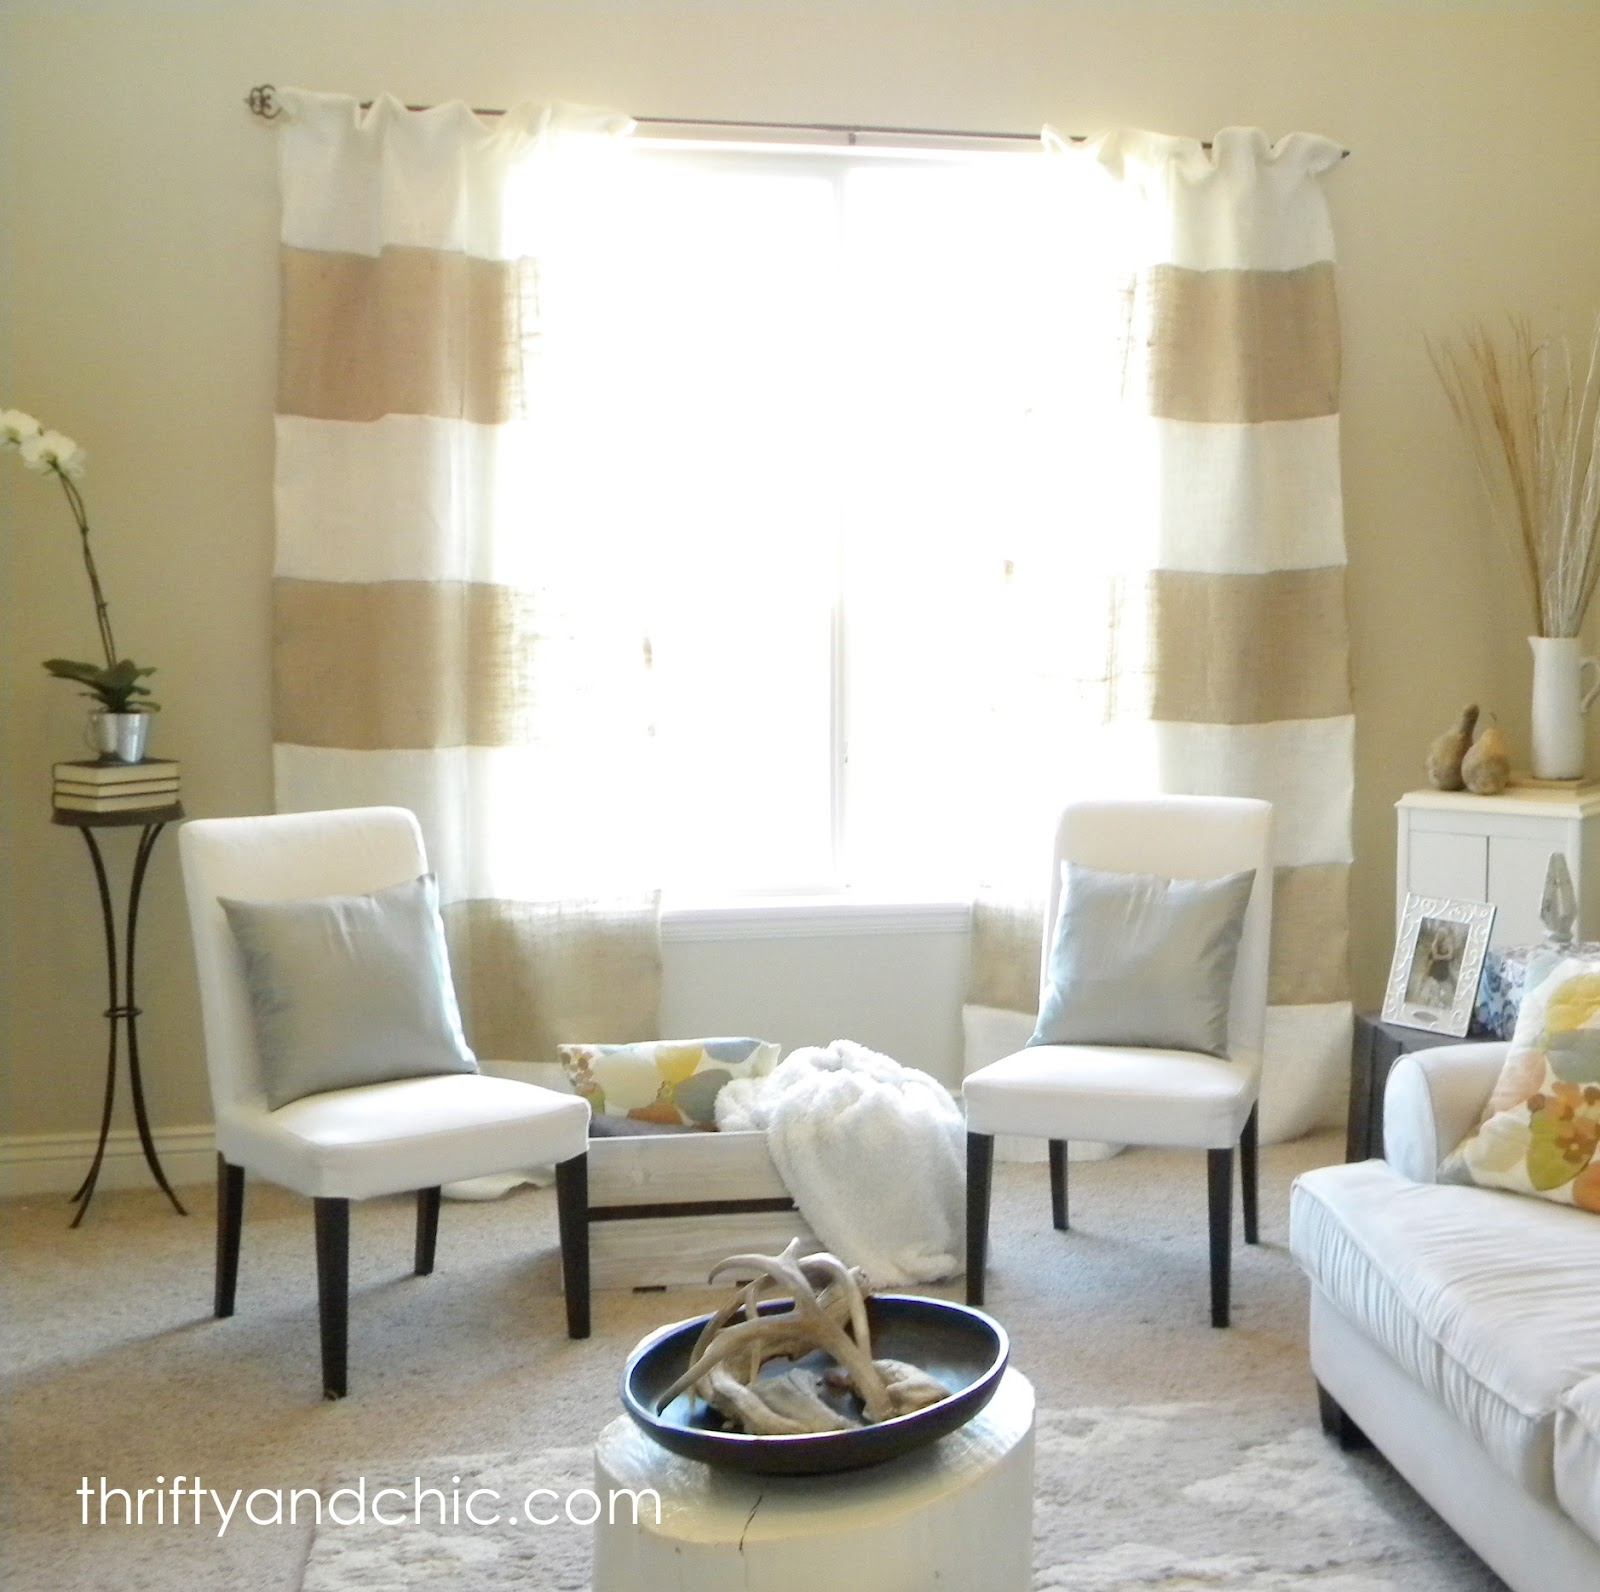 Thrifty And Chic Diy Projects And Home Decor With Burlap Curtains (Photo 17 of 25)